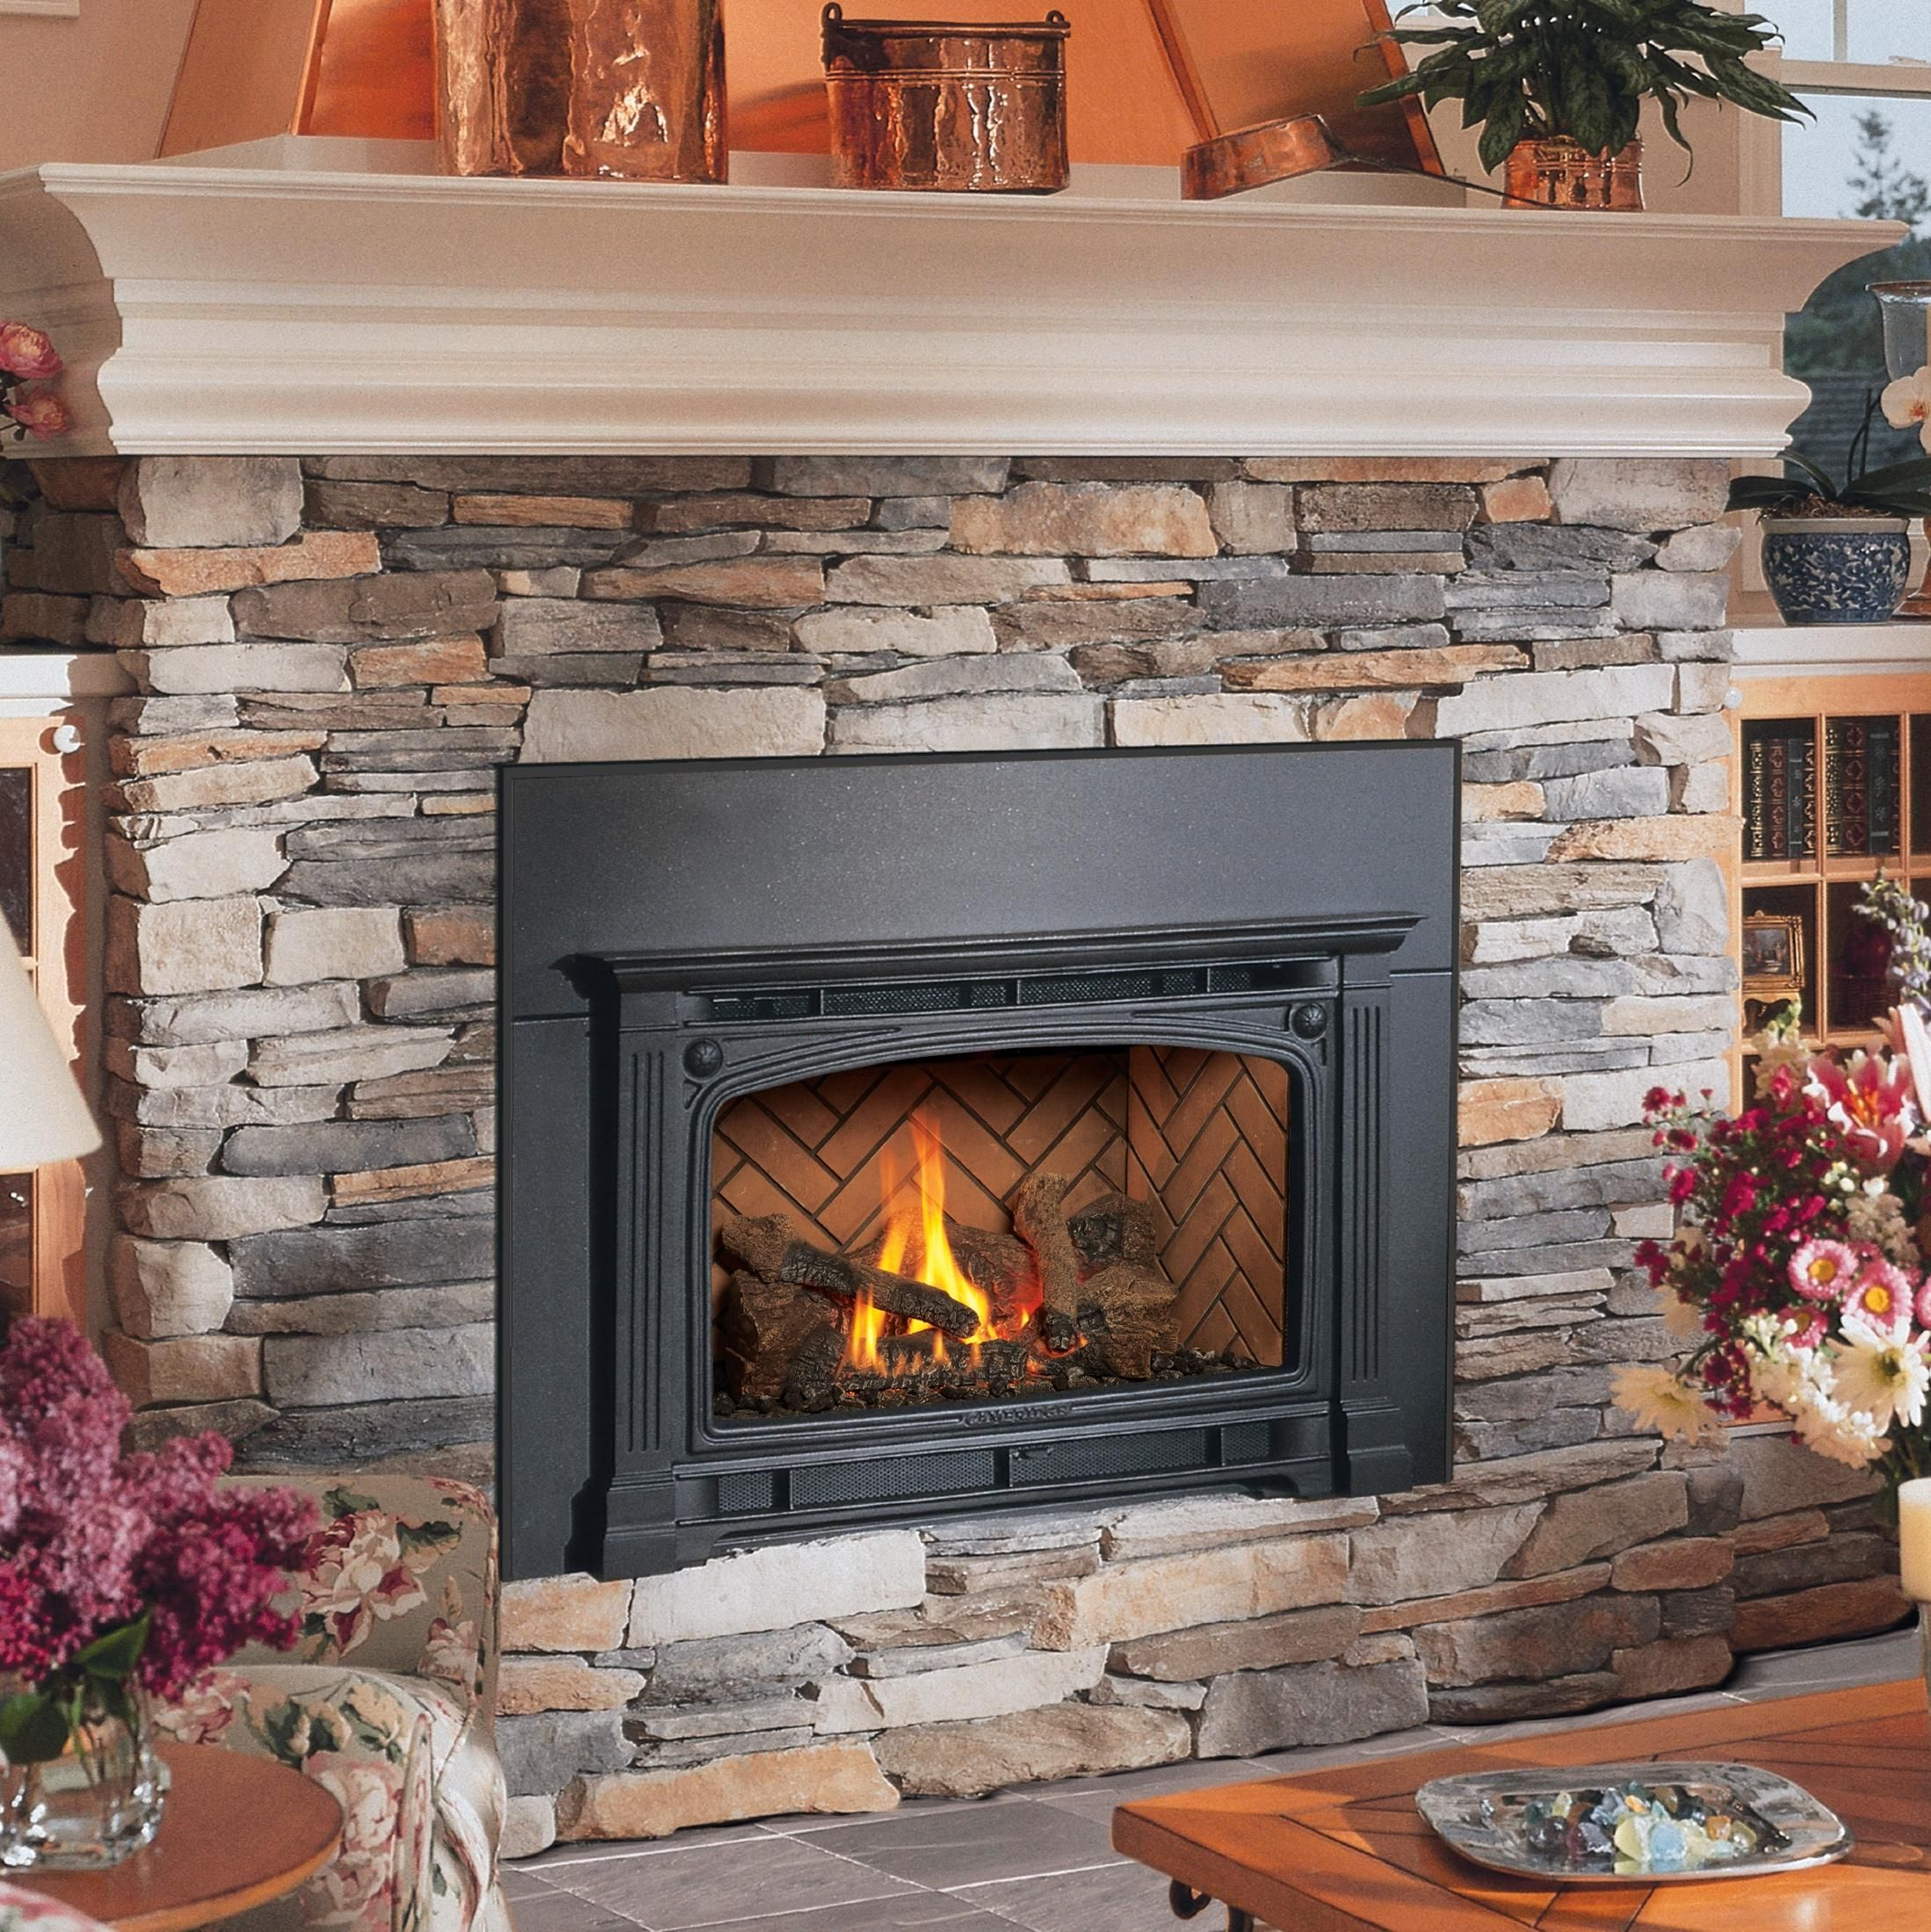 Inserts fireplace accessories new york by bowden s fireside - Inserts Fireplace Accessories New York By Bowden S Fireside Gas Fireplace Inserts Avalon Dv Gas Download